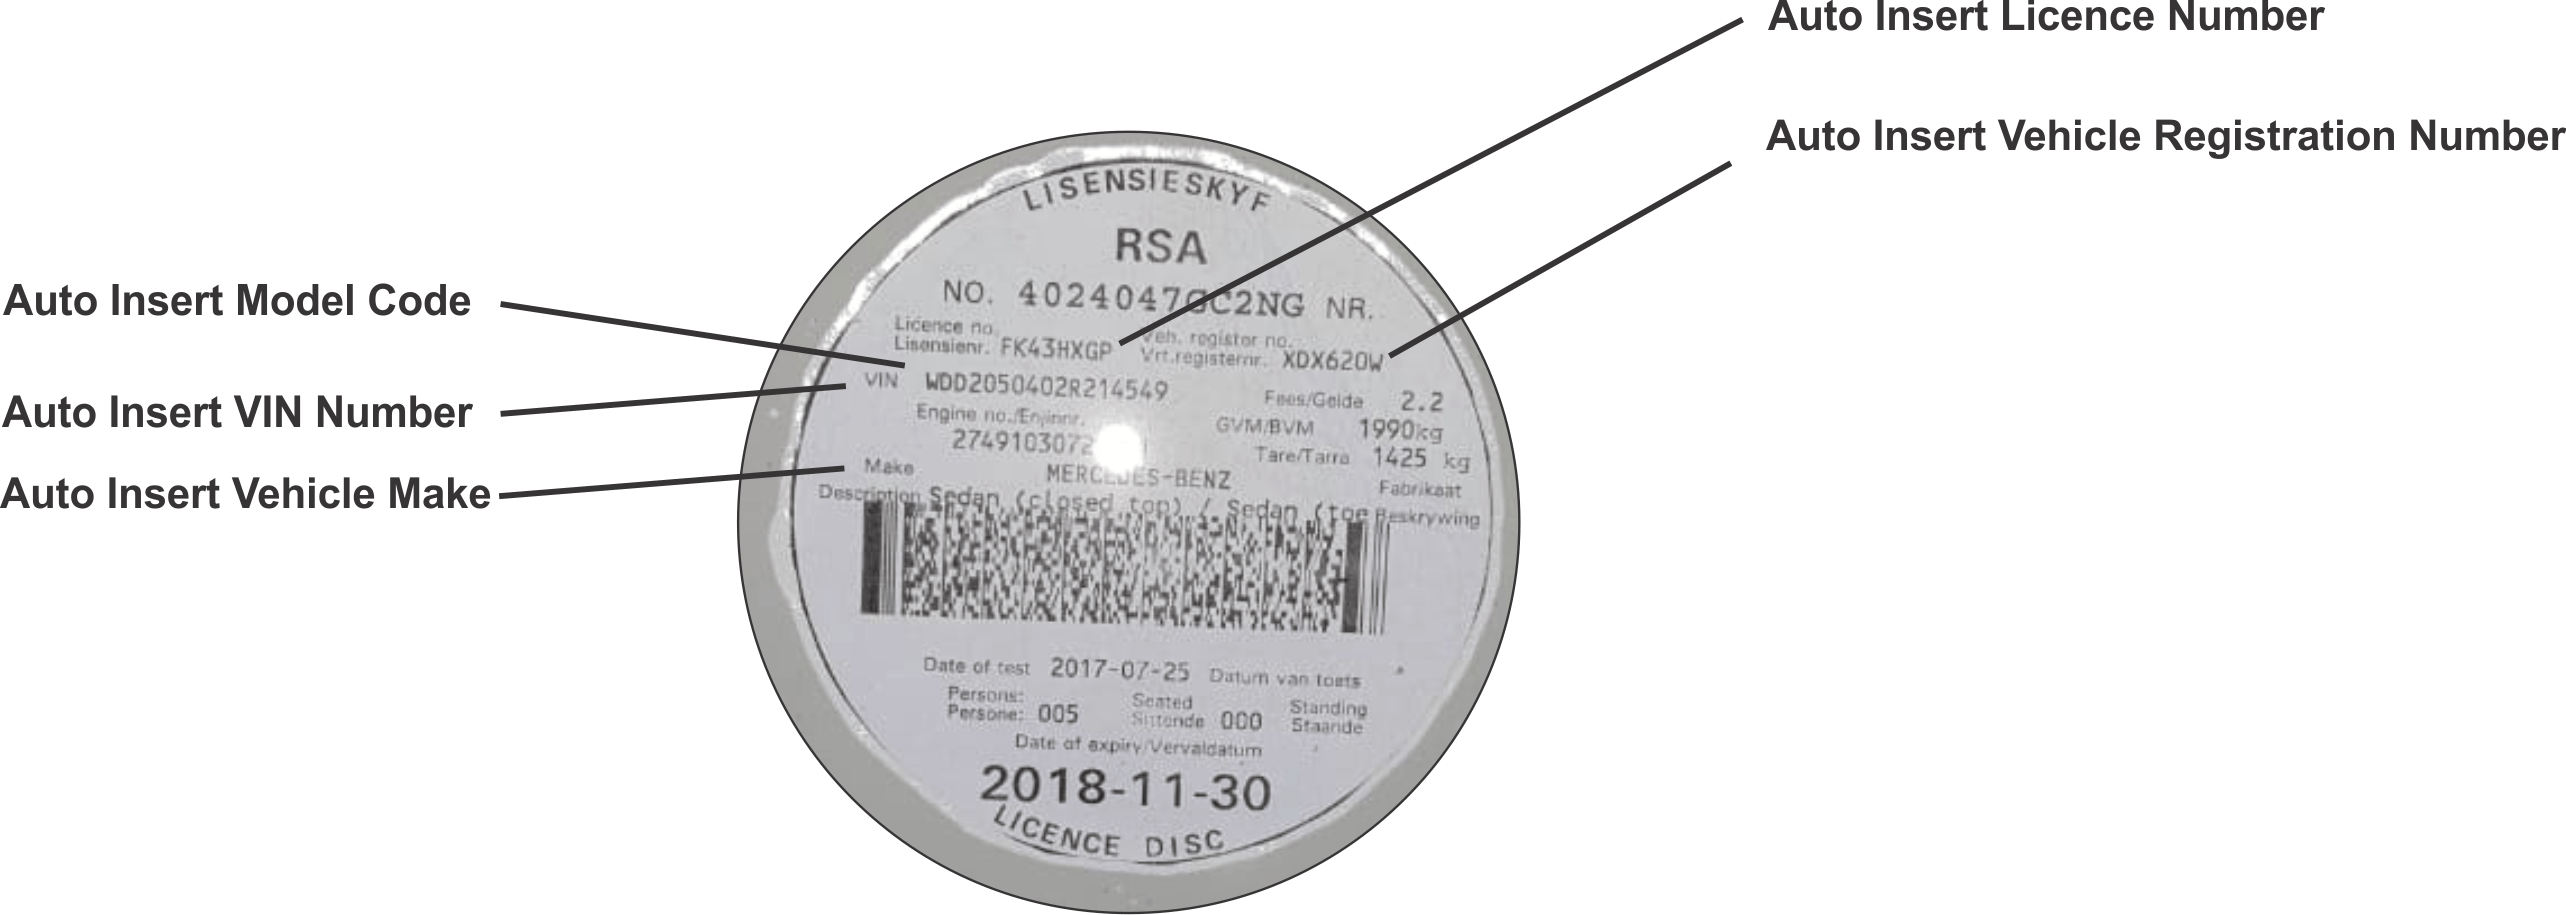 license-disc-info